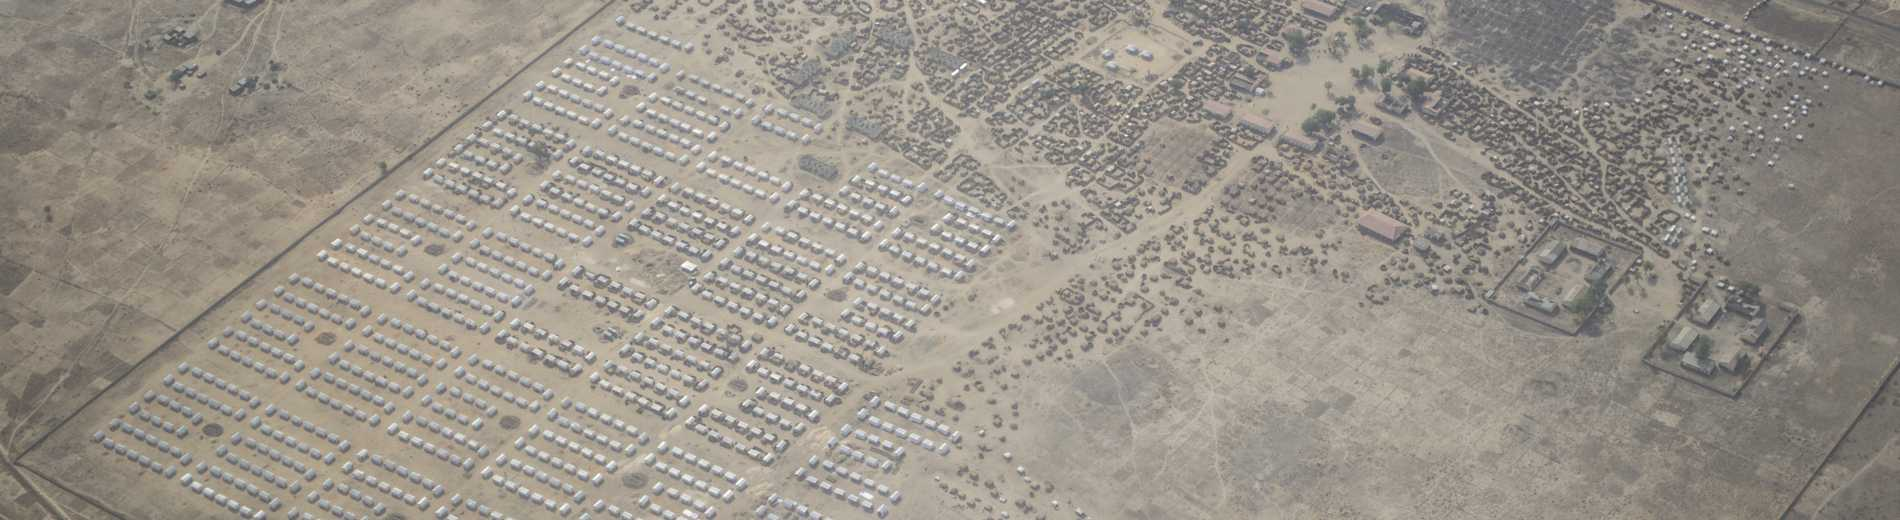 View of 500 NHF-funded shelters in Mafa, Borno State.